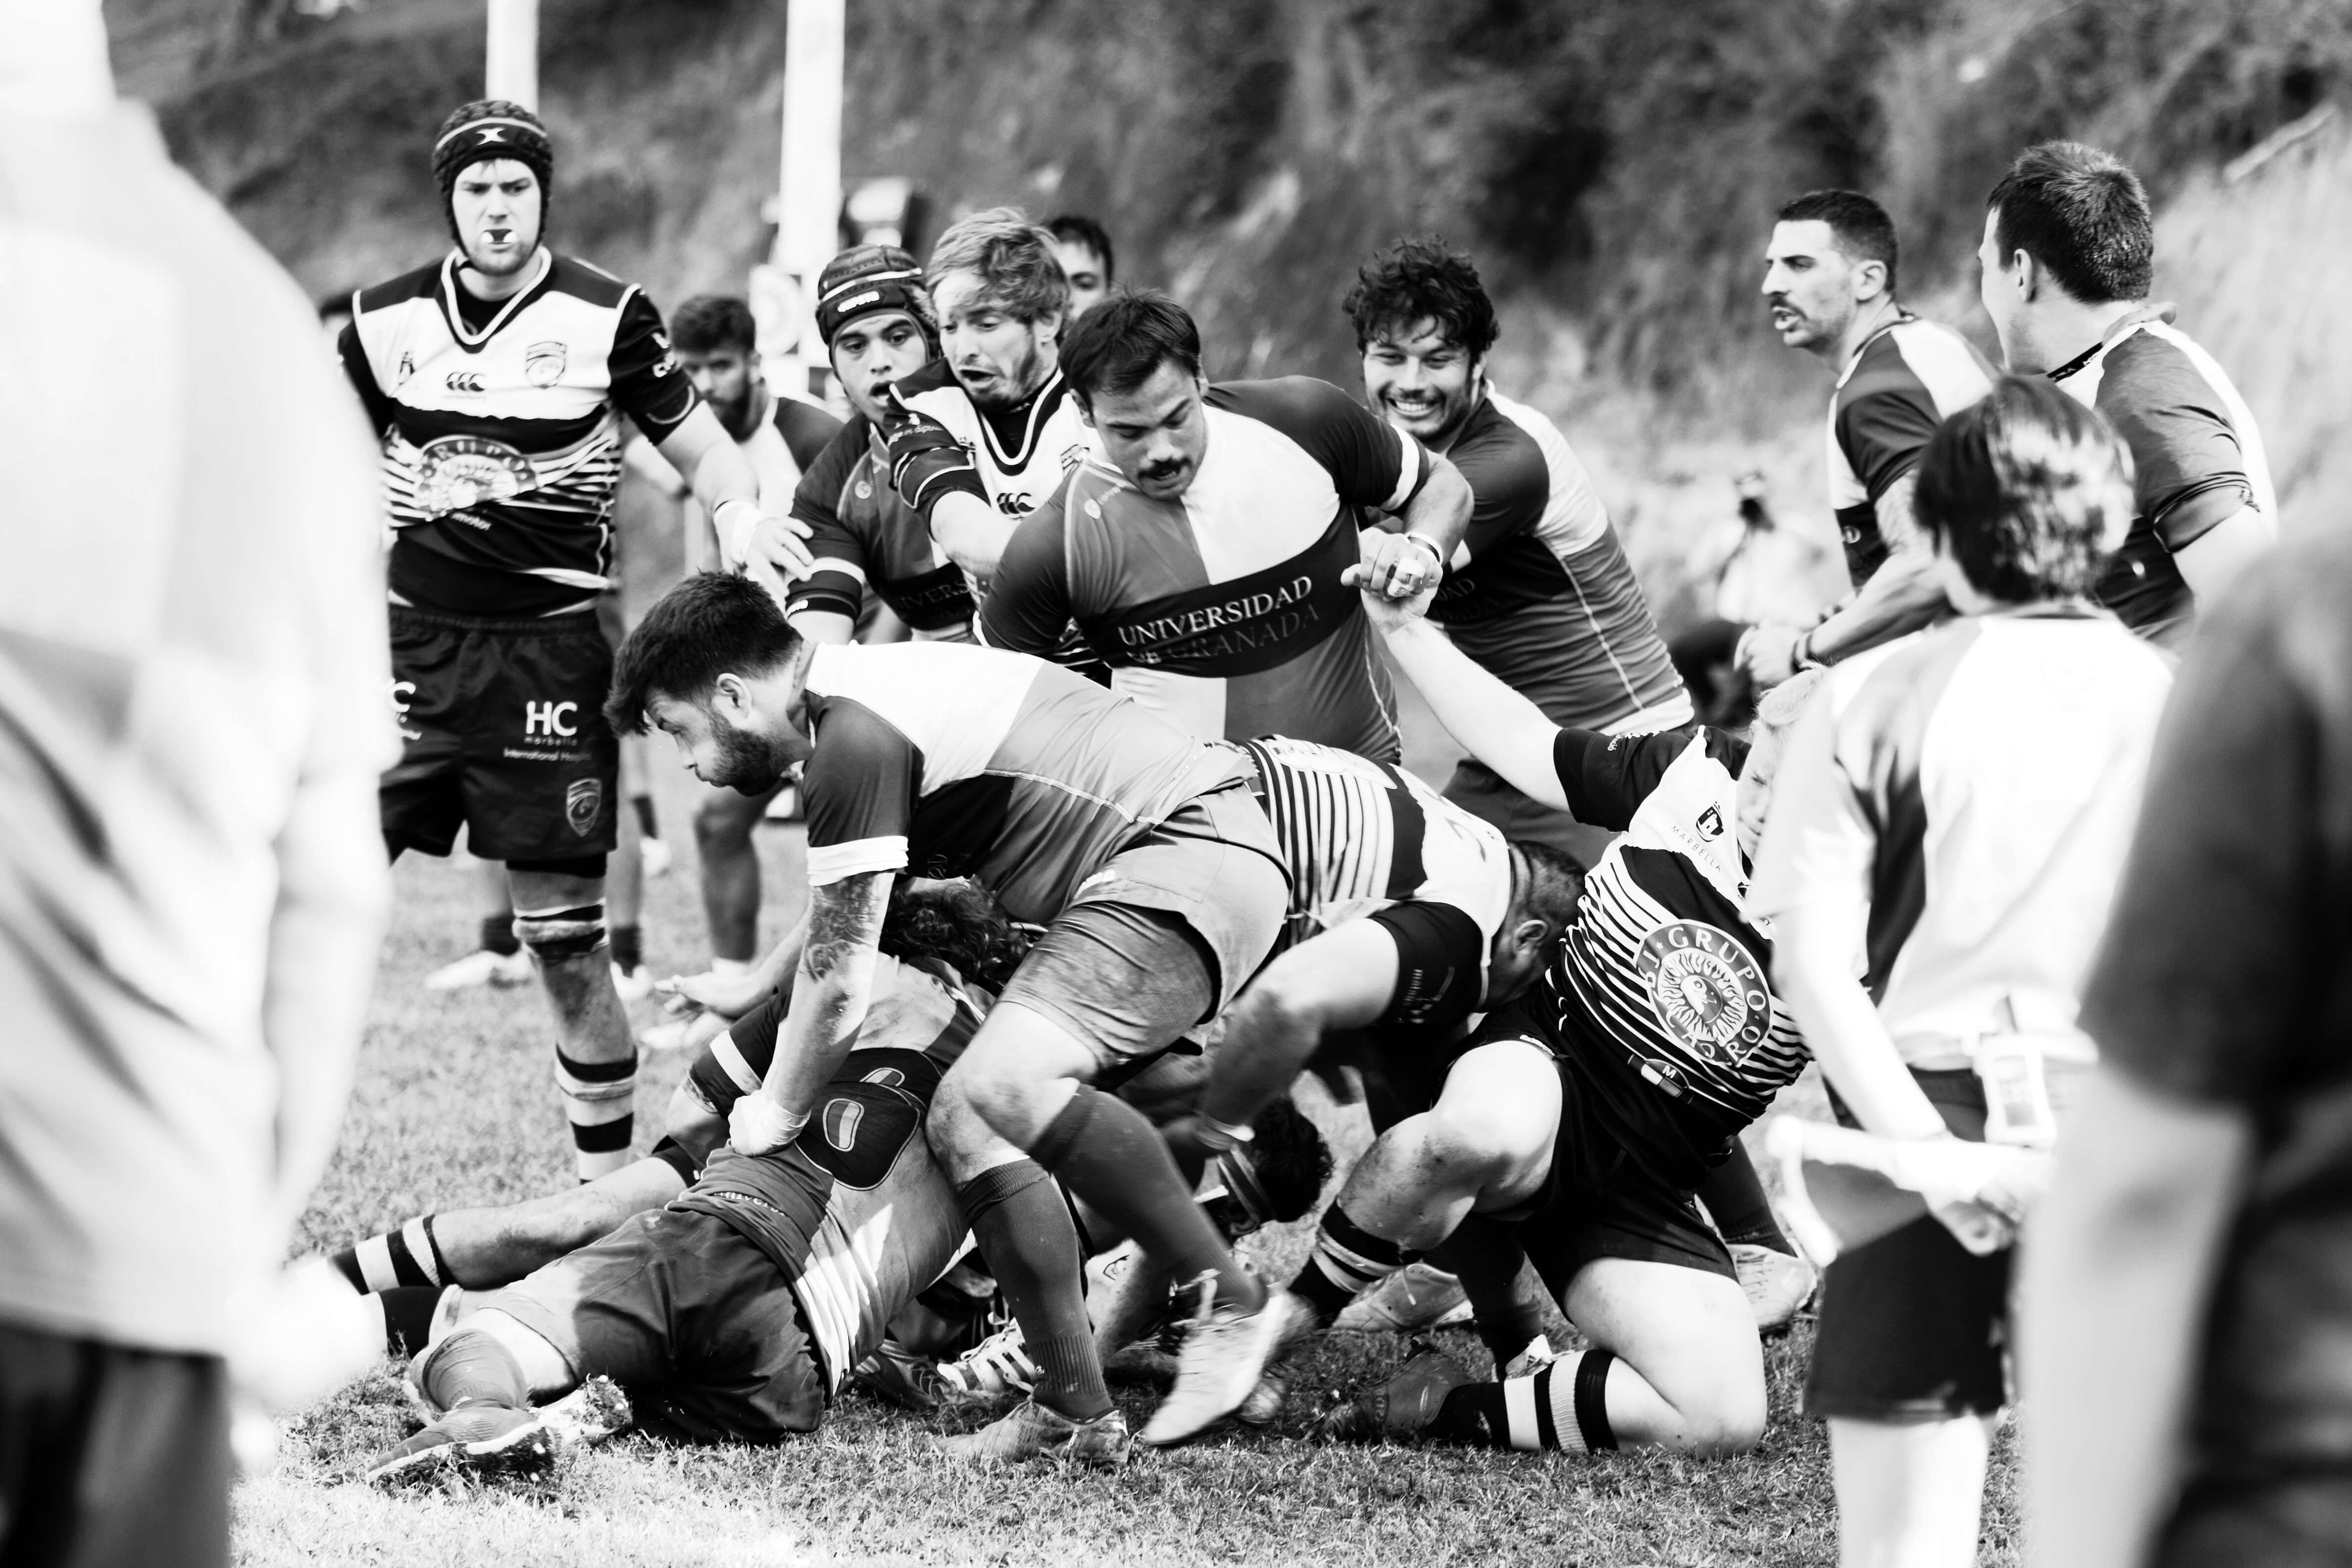 A picture of a rugby scrum in a black and white imagery